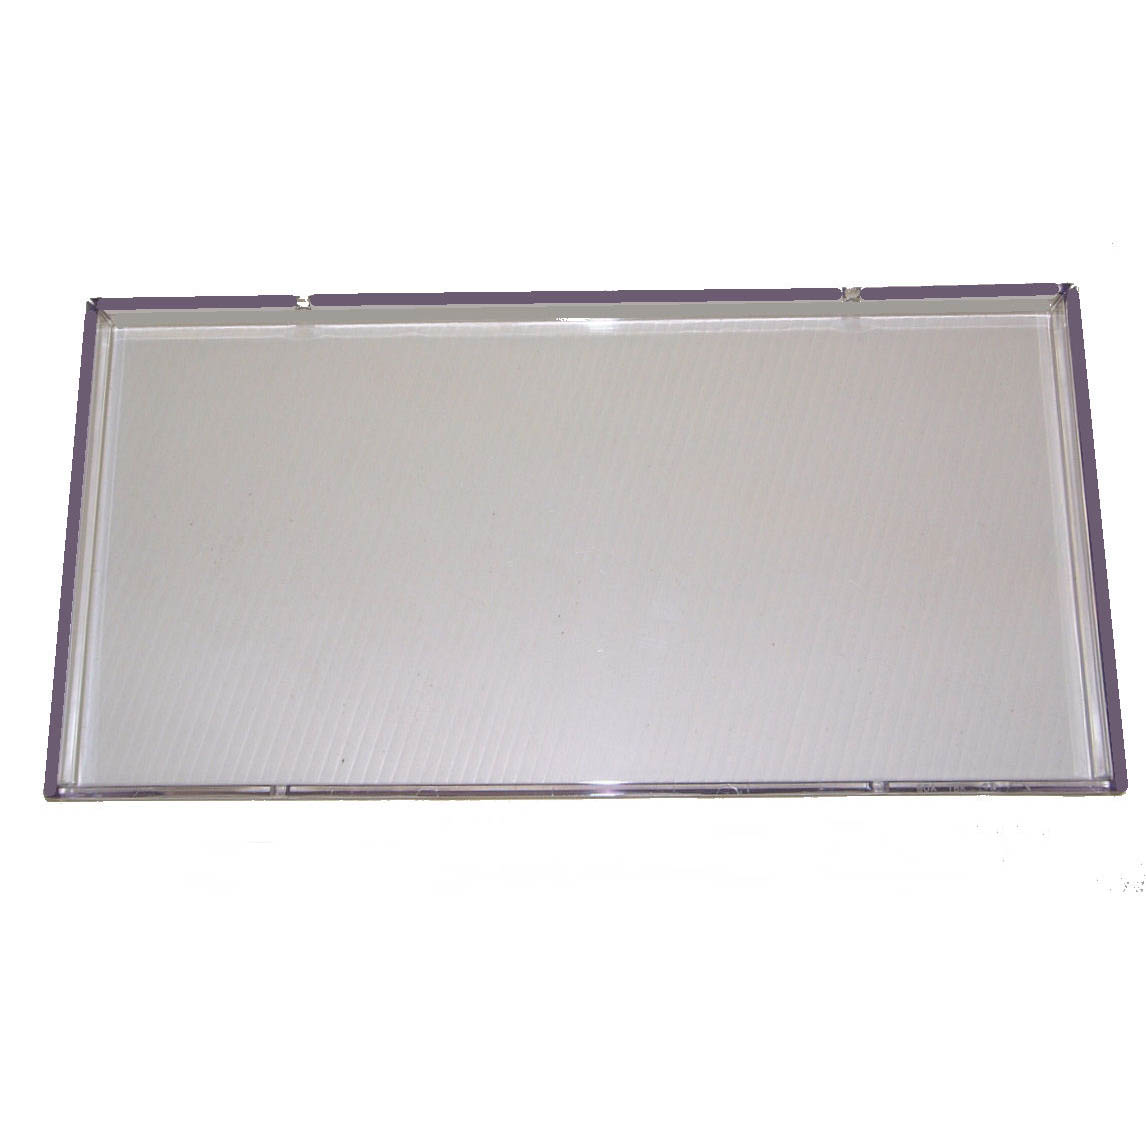 K6 LARGE POLY WINDOW X 5